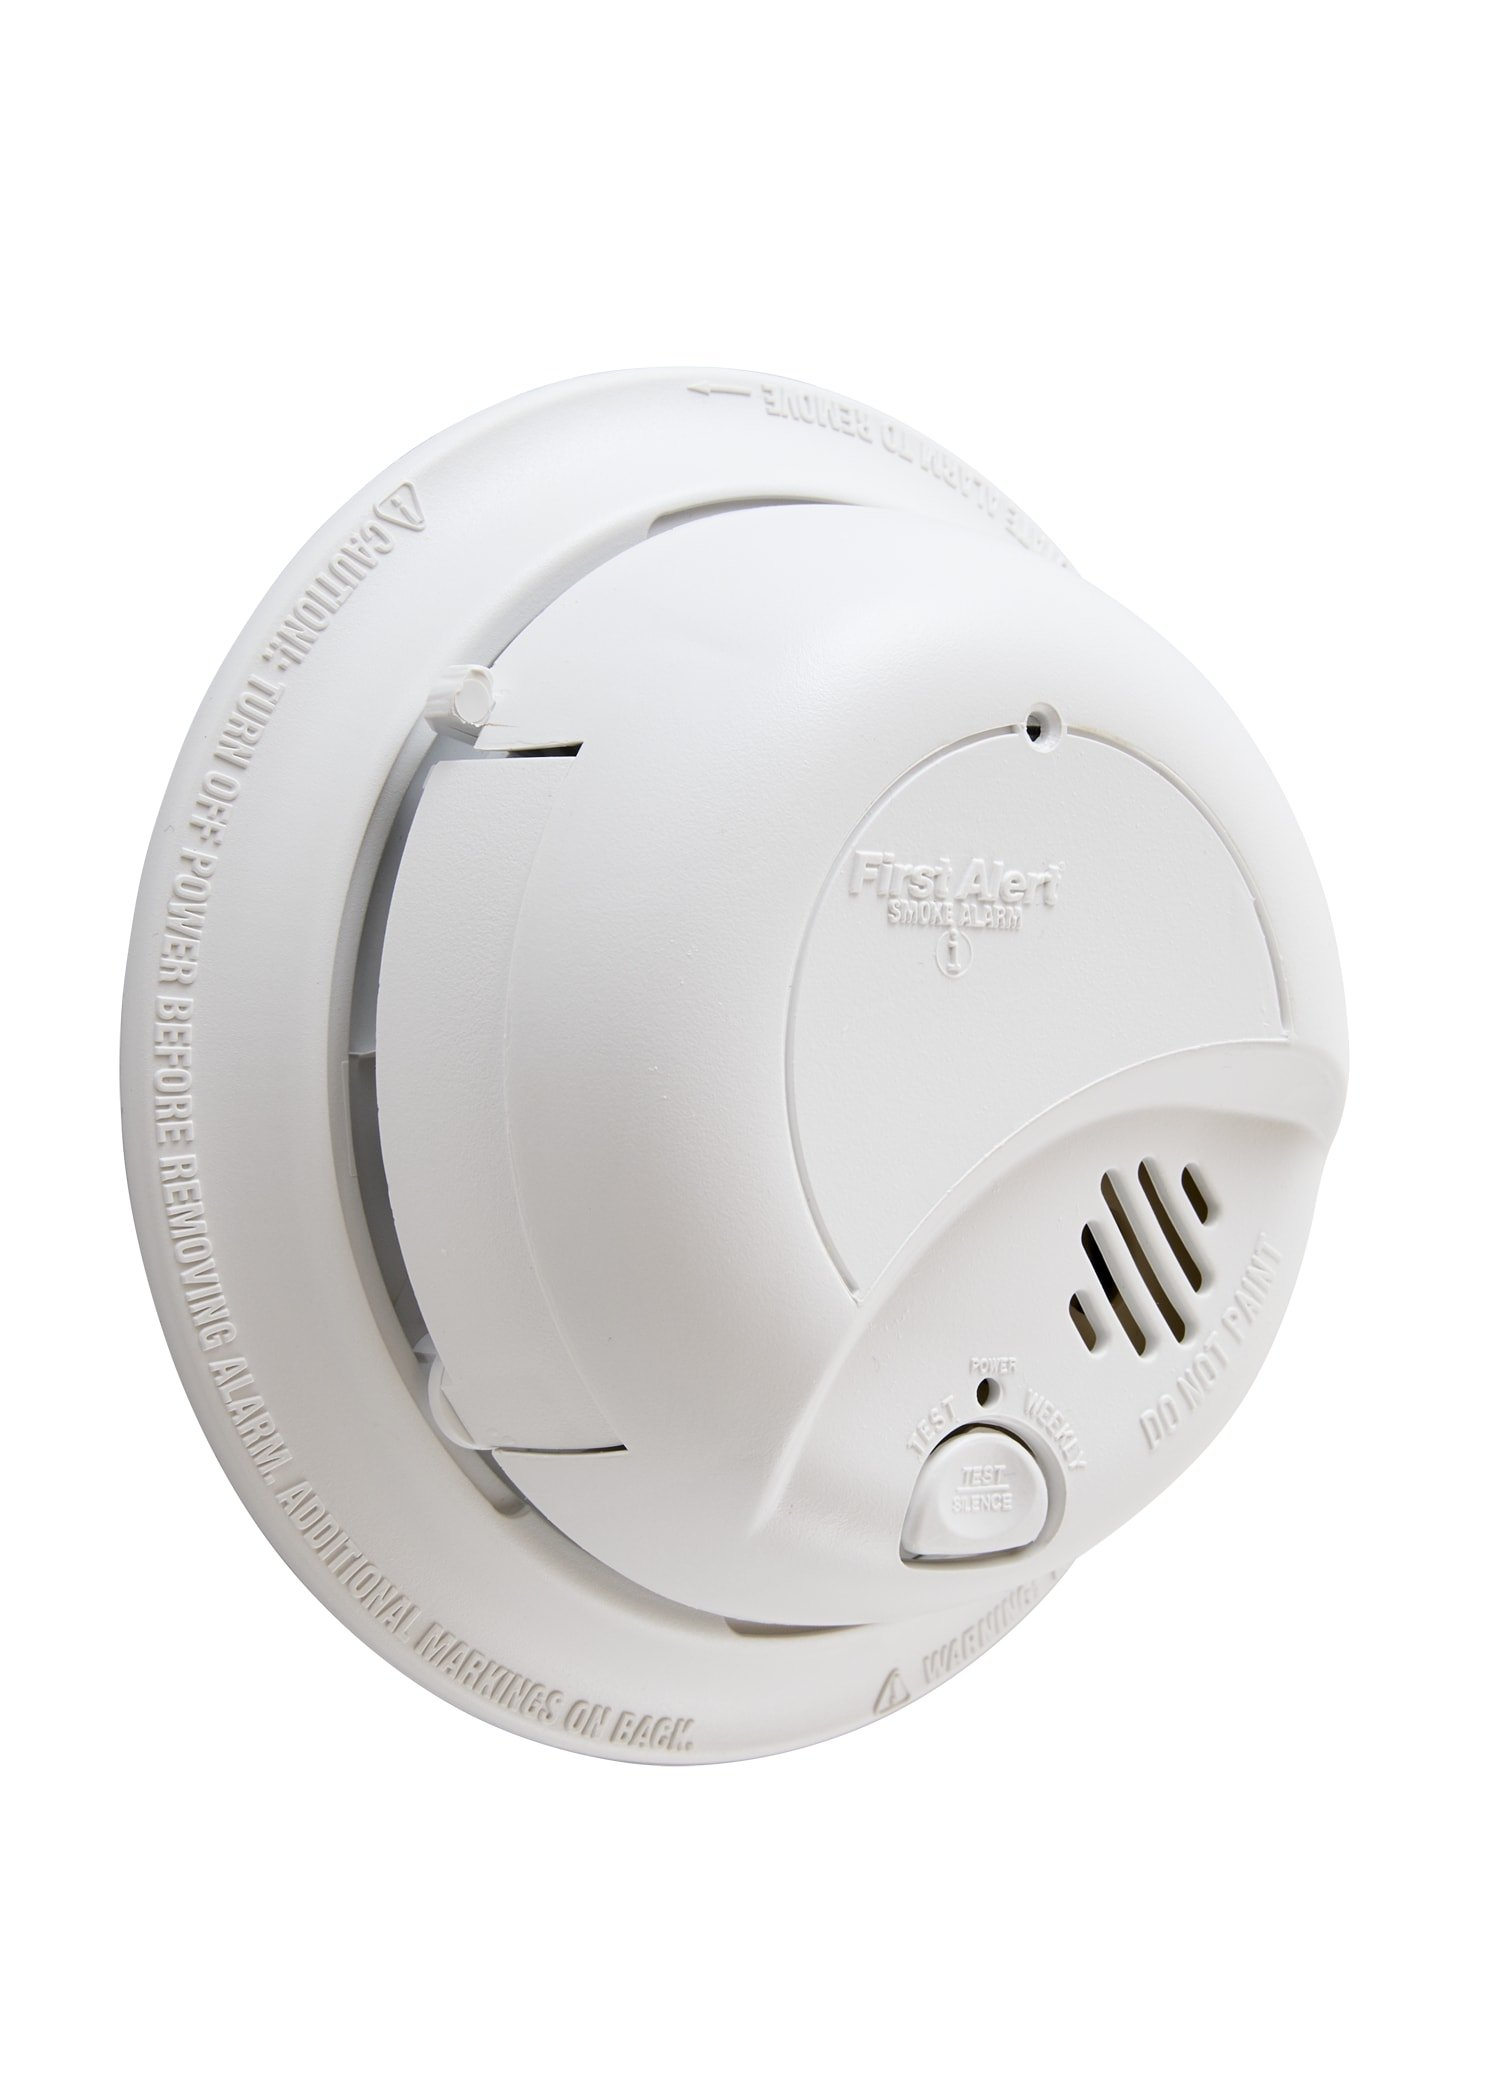 First Alert Brk Hardwired Smoke Alarm And Carbon Monoxide Detector ...